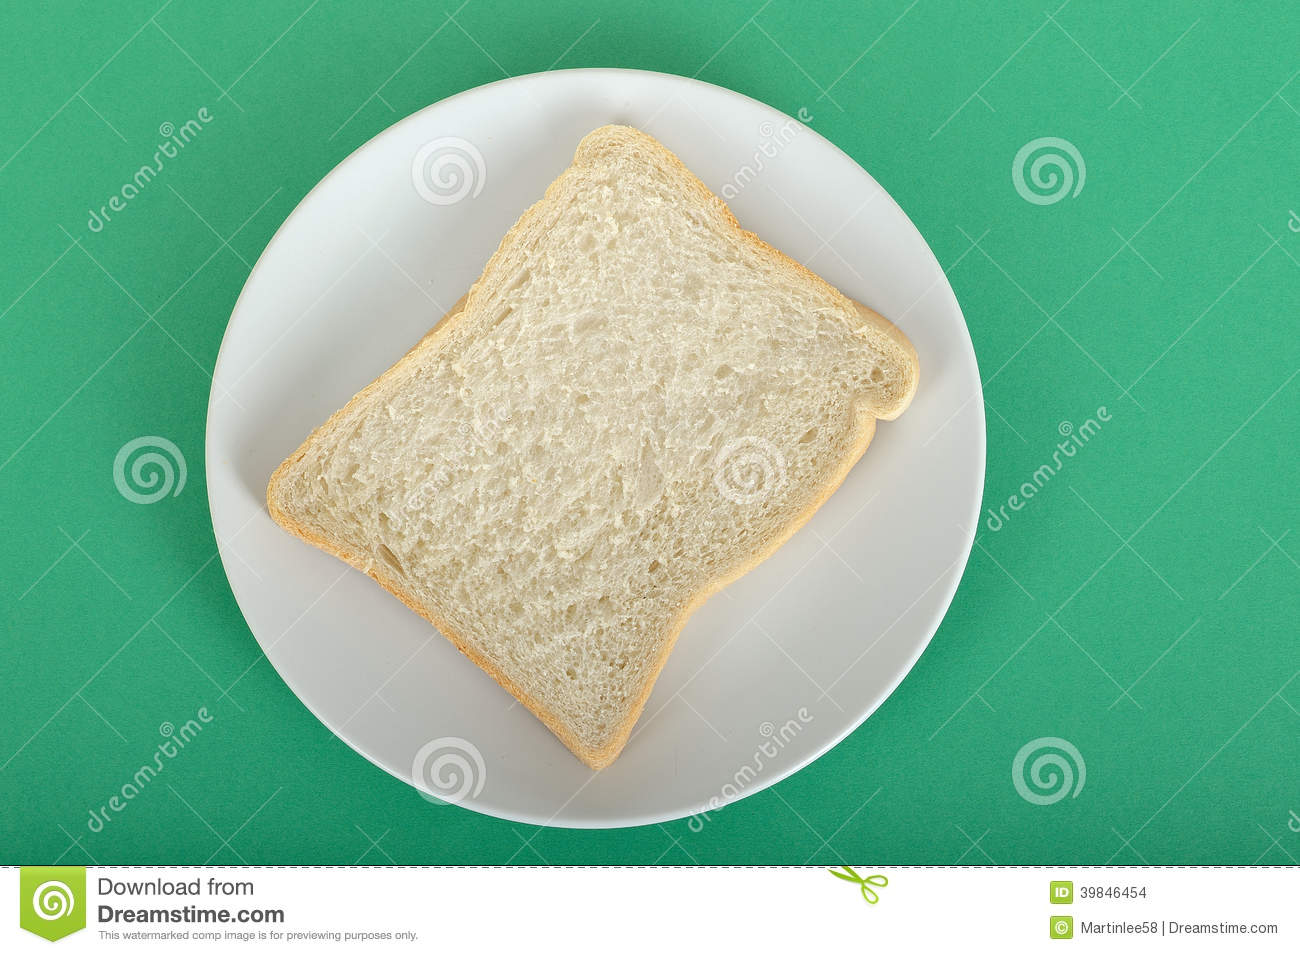 Slice Of White Bread On A Plate Stock Photo - Image: 39846454